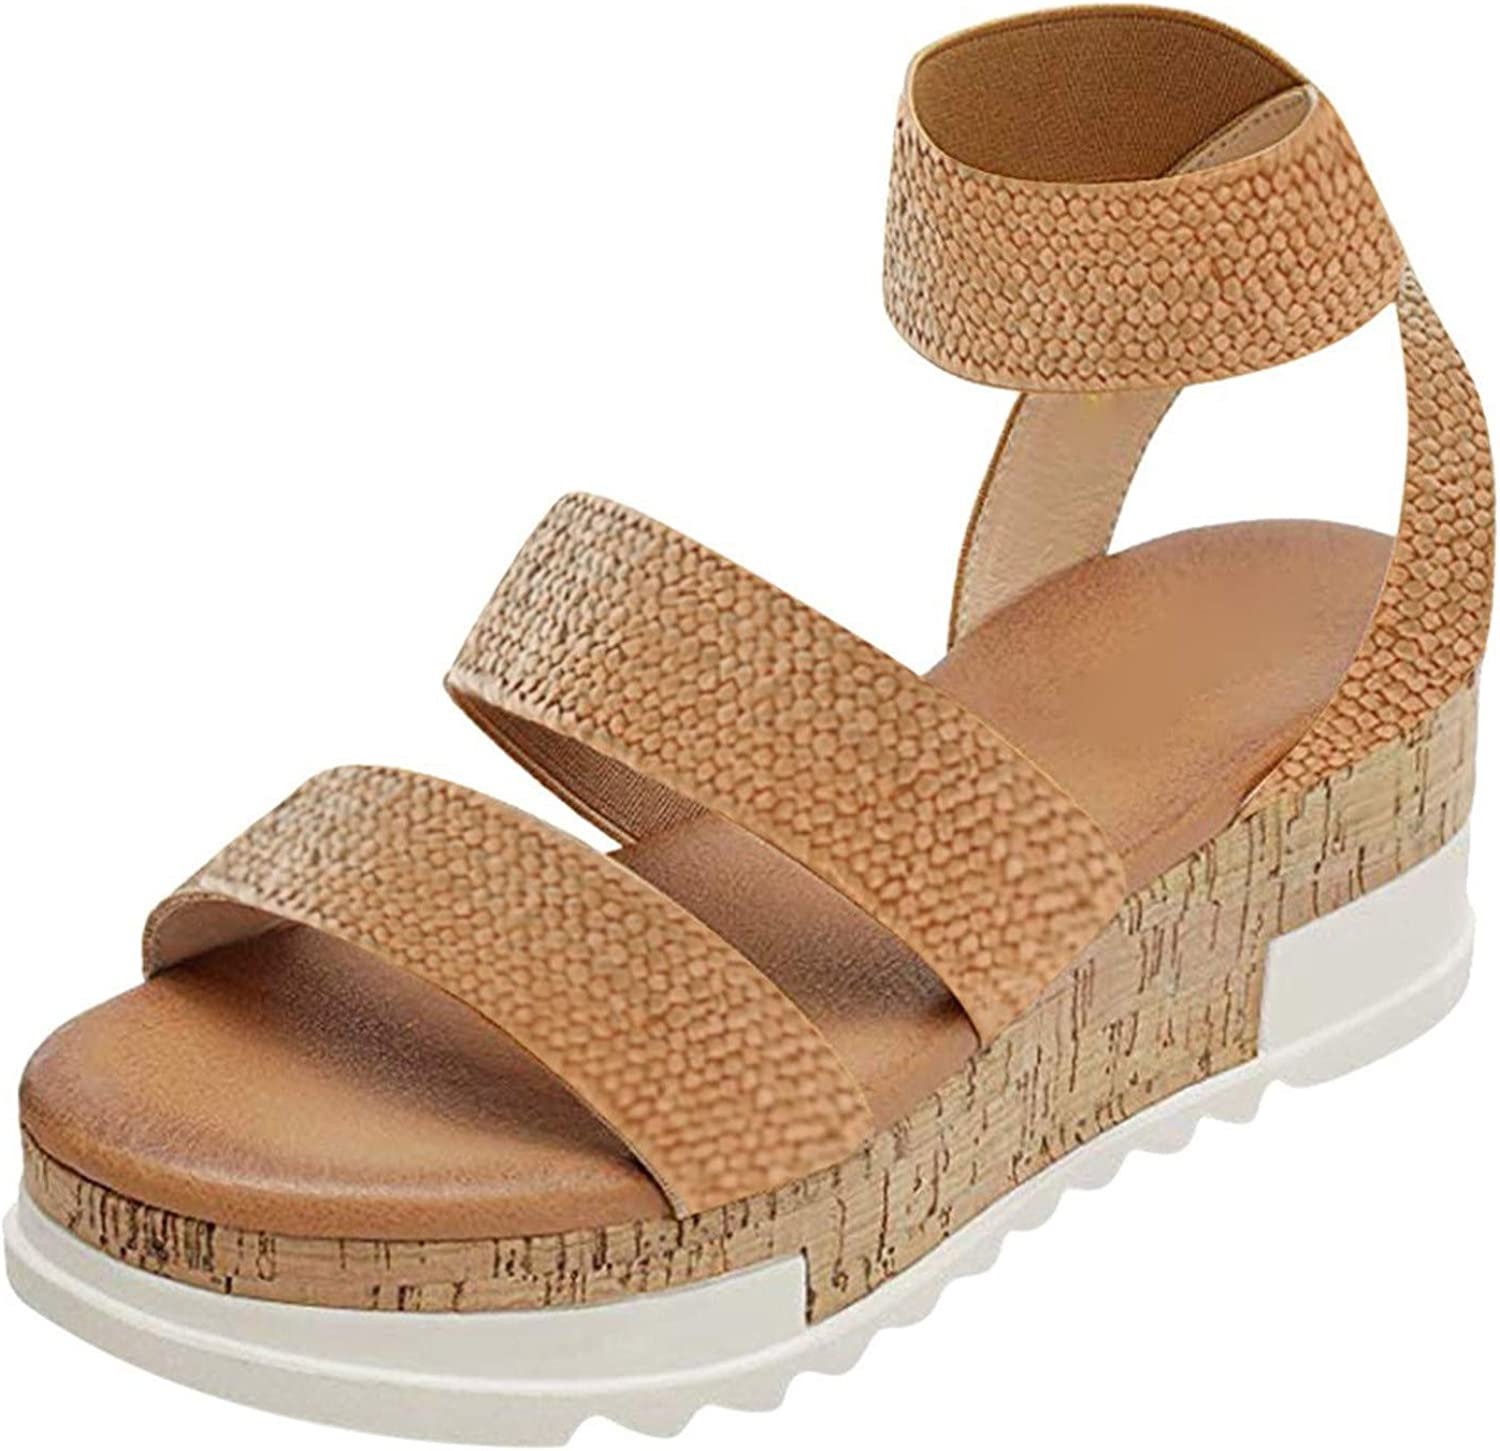 Max Year-end gift 40% OFF Padaleks Women's Strappy Espadrille Platform Sandals Ankle Wedge